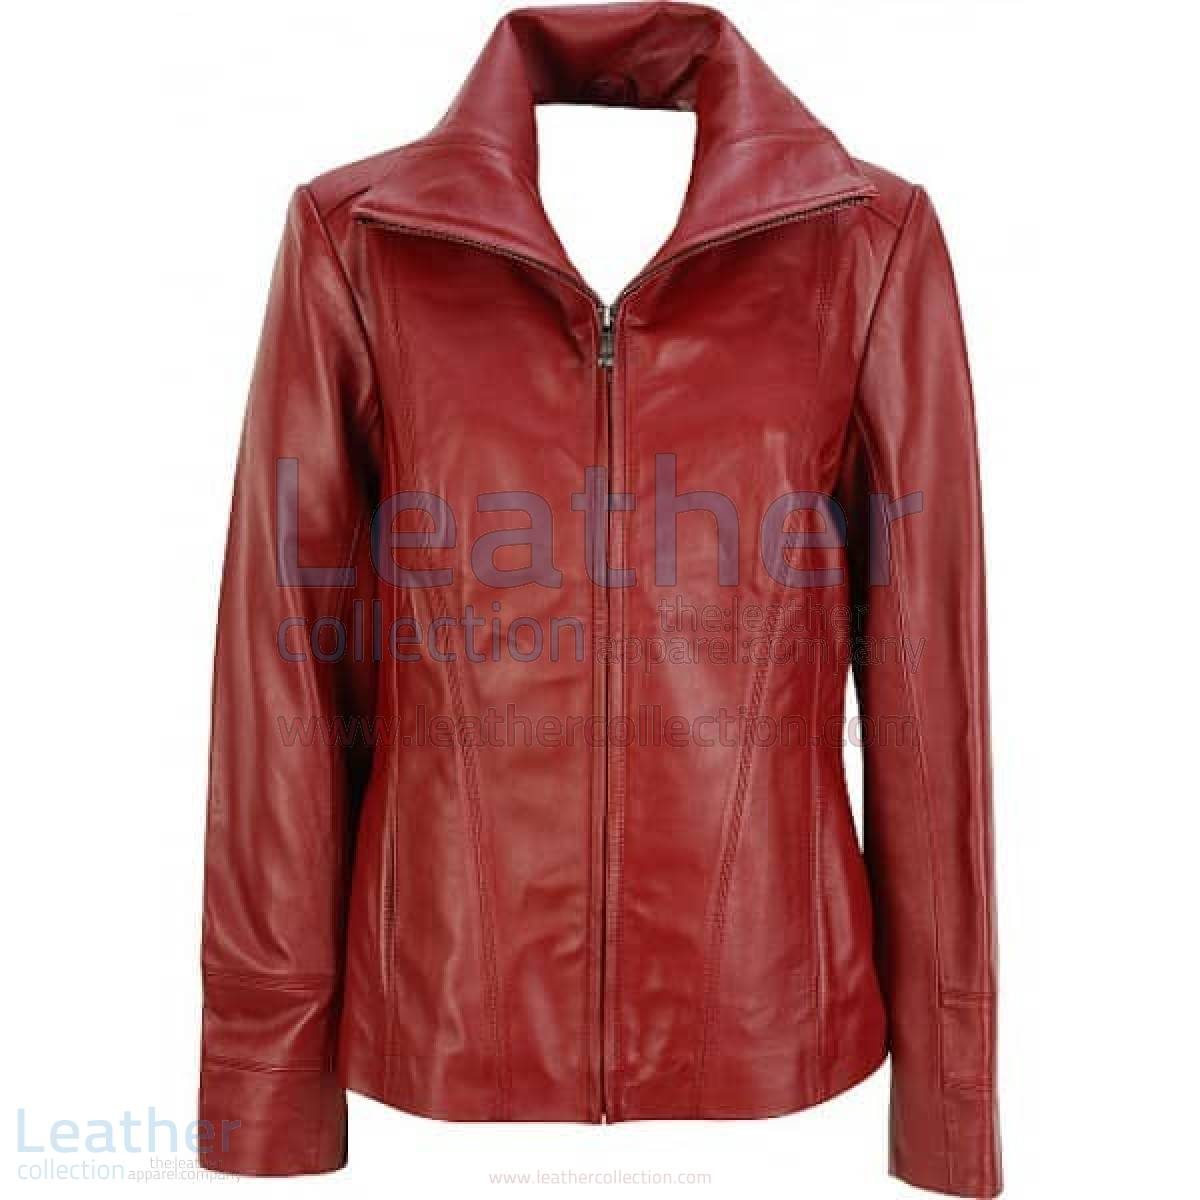 Dark Red Leather Fashion Jacket